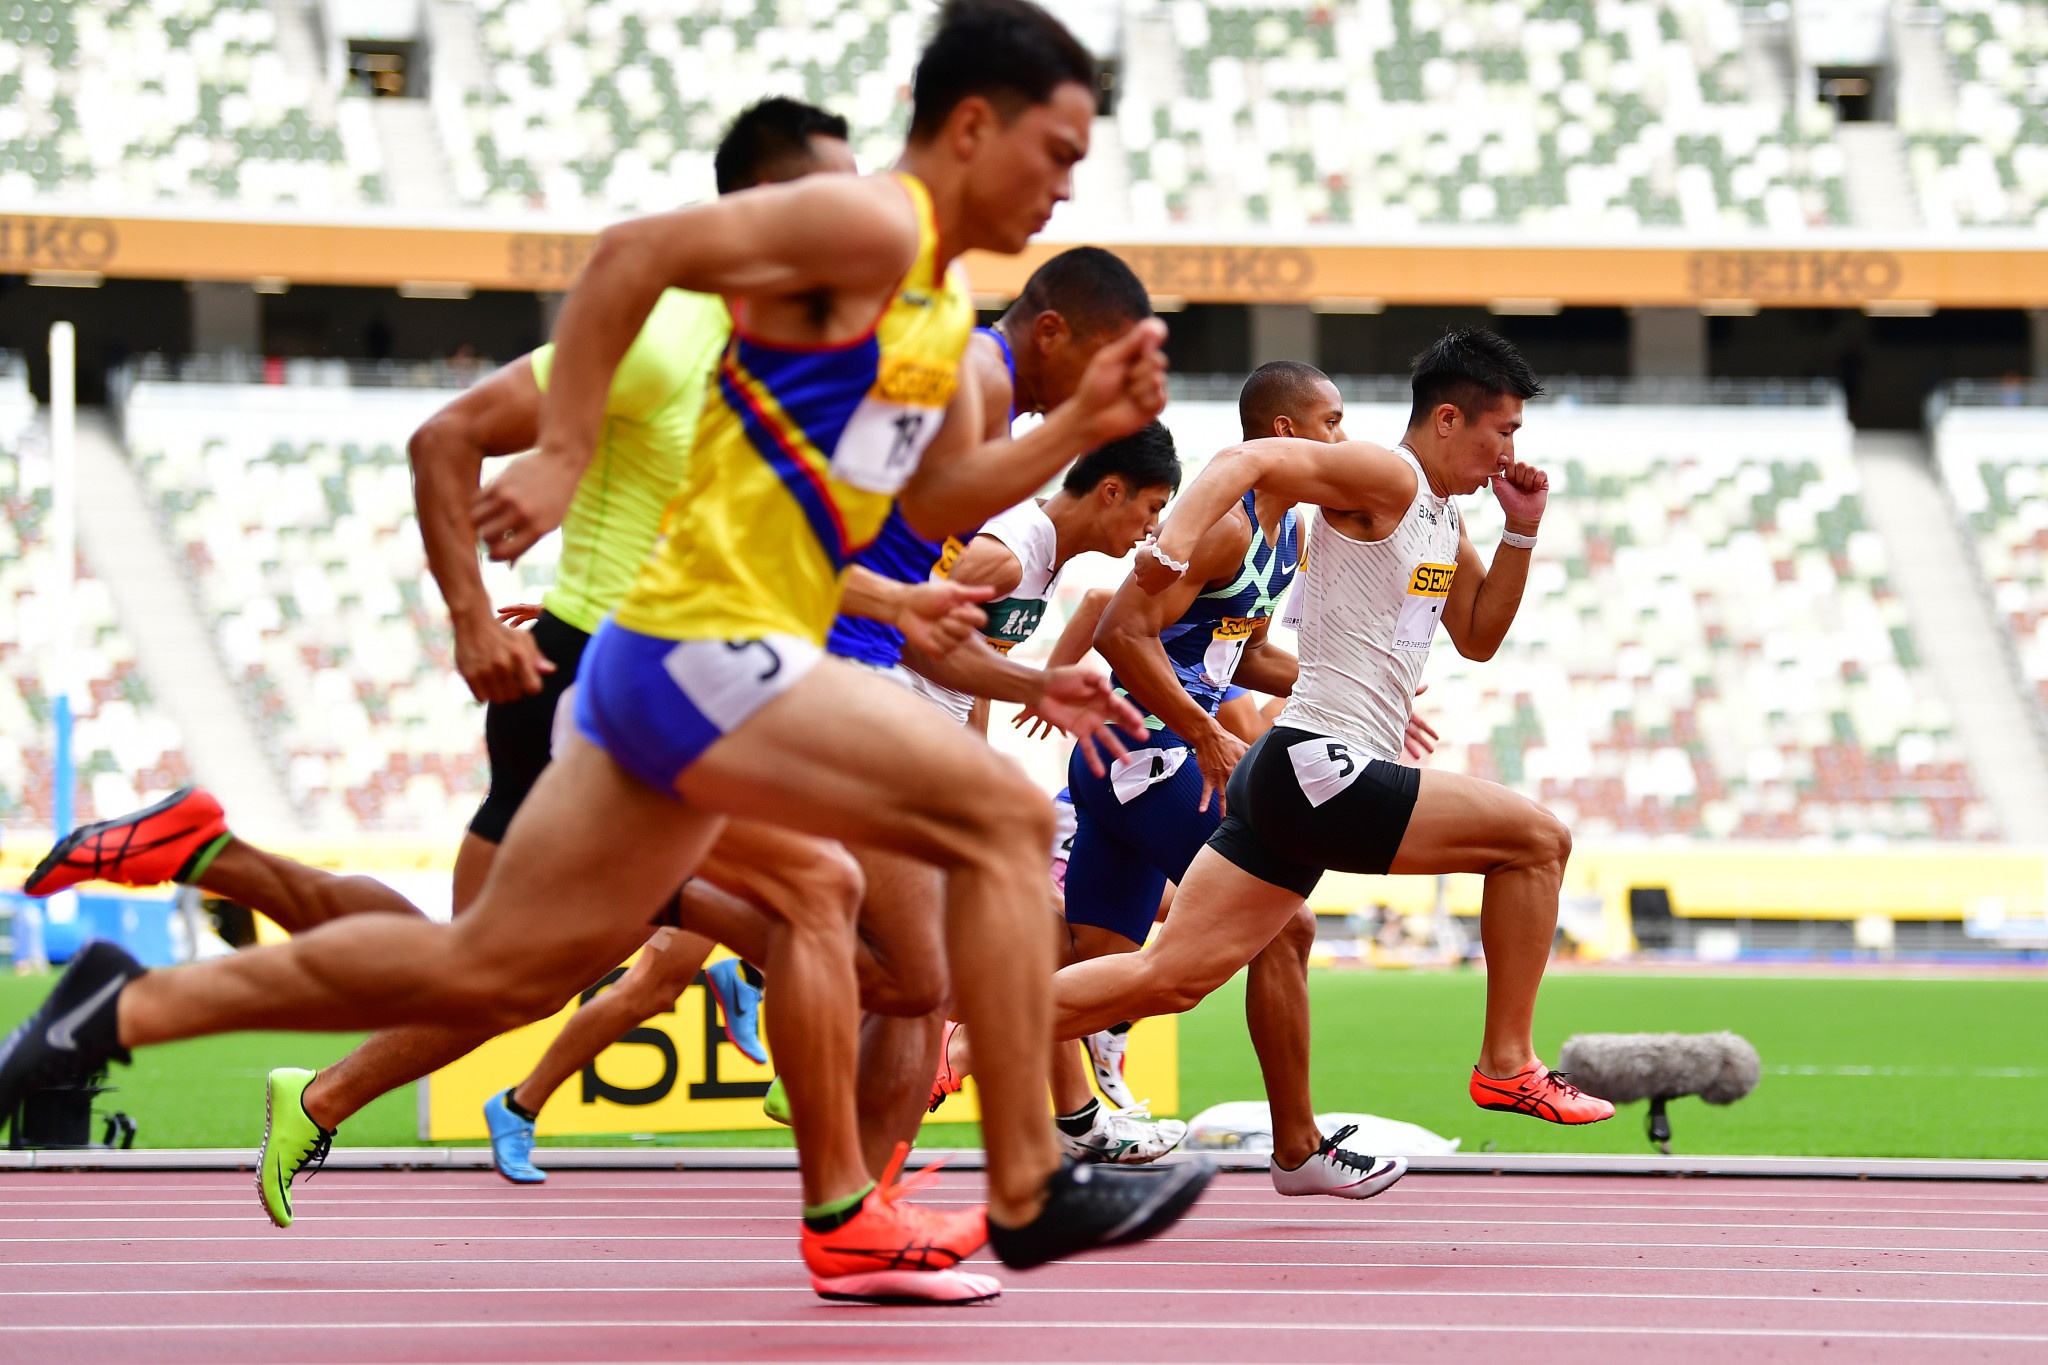 Japan's Kiryu Yoshihide won the 100m at last year's World Athletics Continental Tour Gold meeting in Tokyo last August ©Getty Images